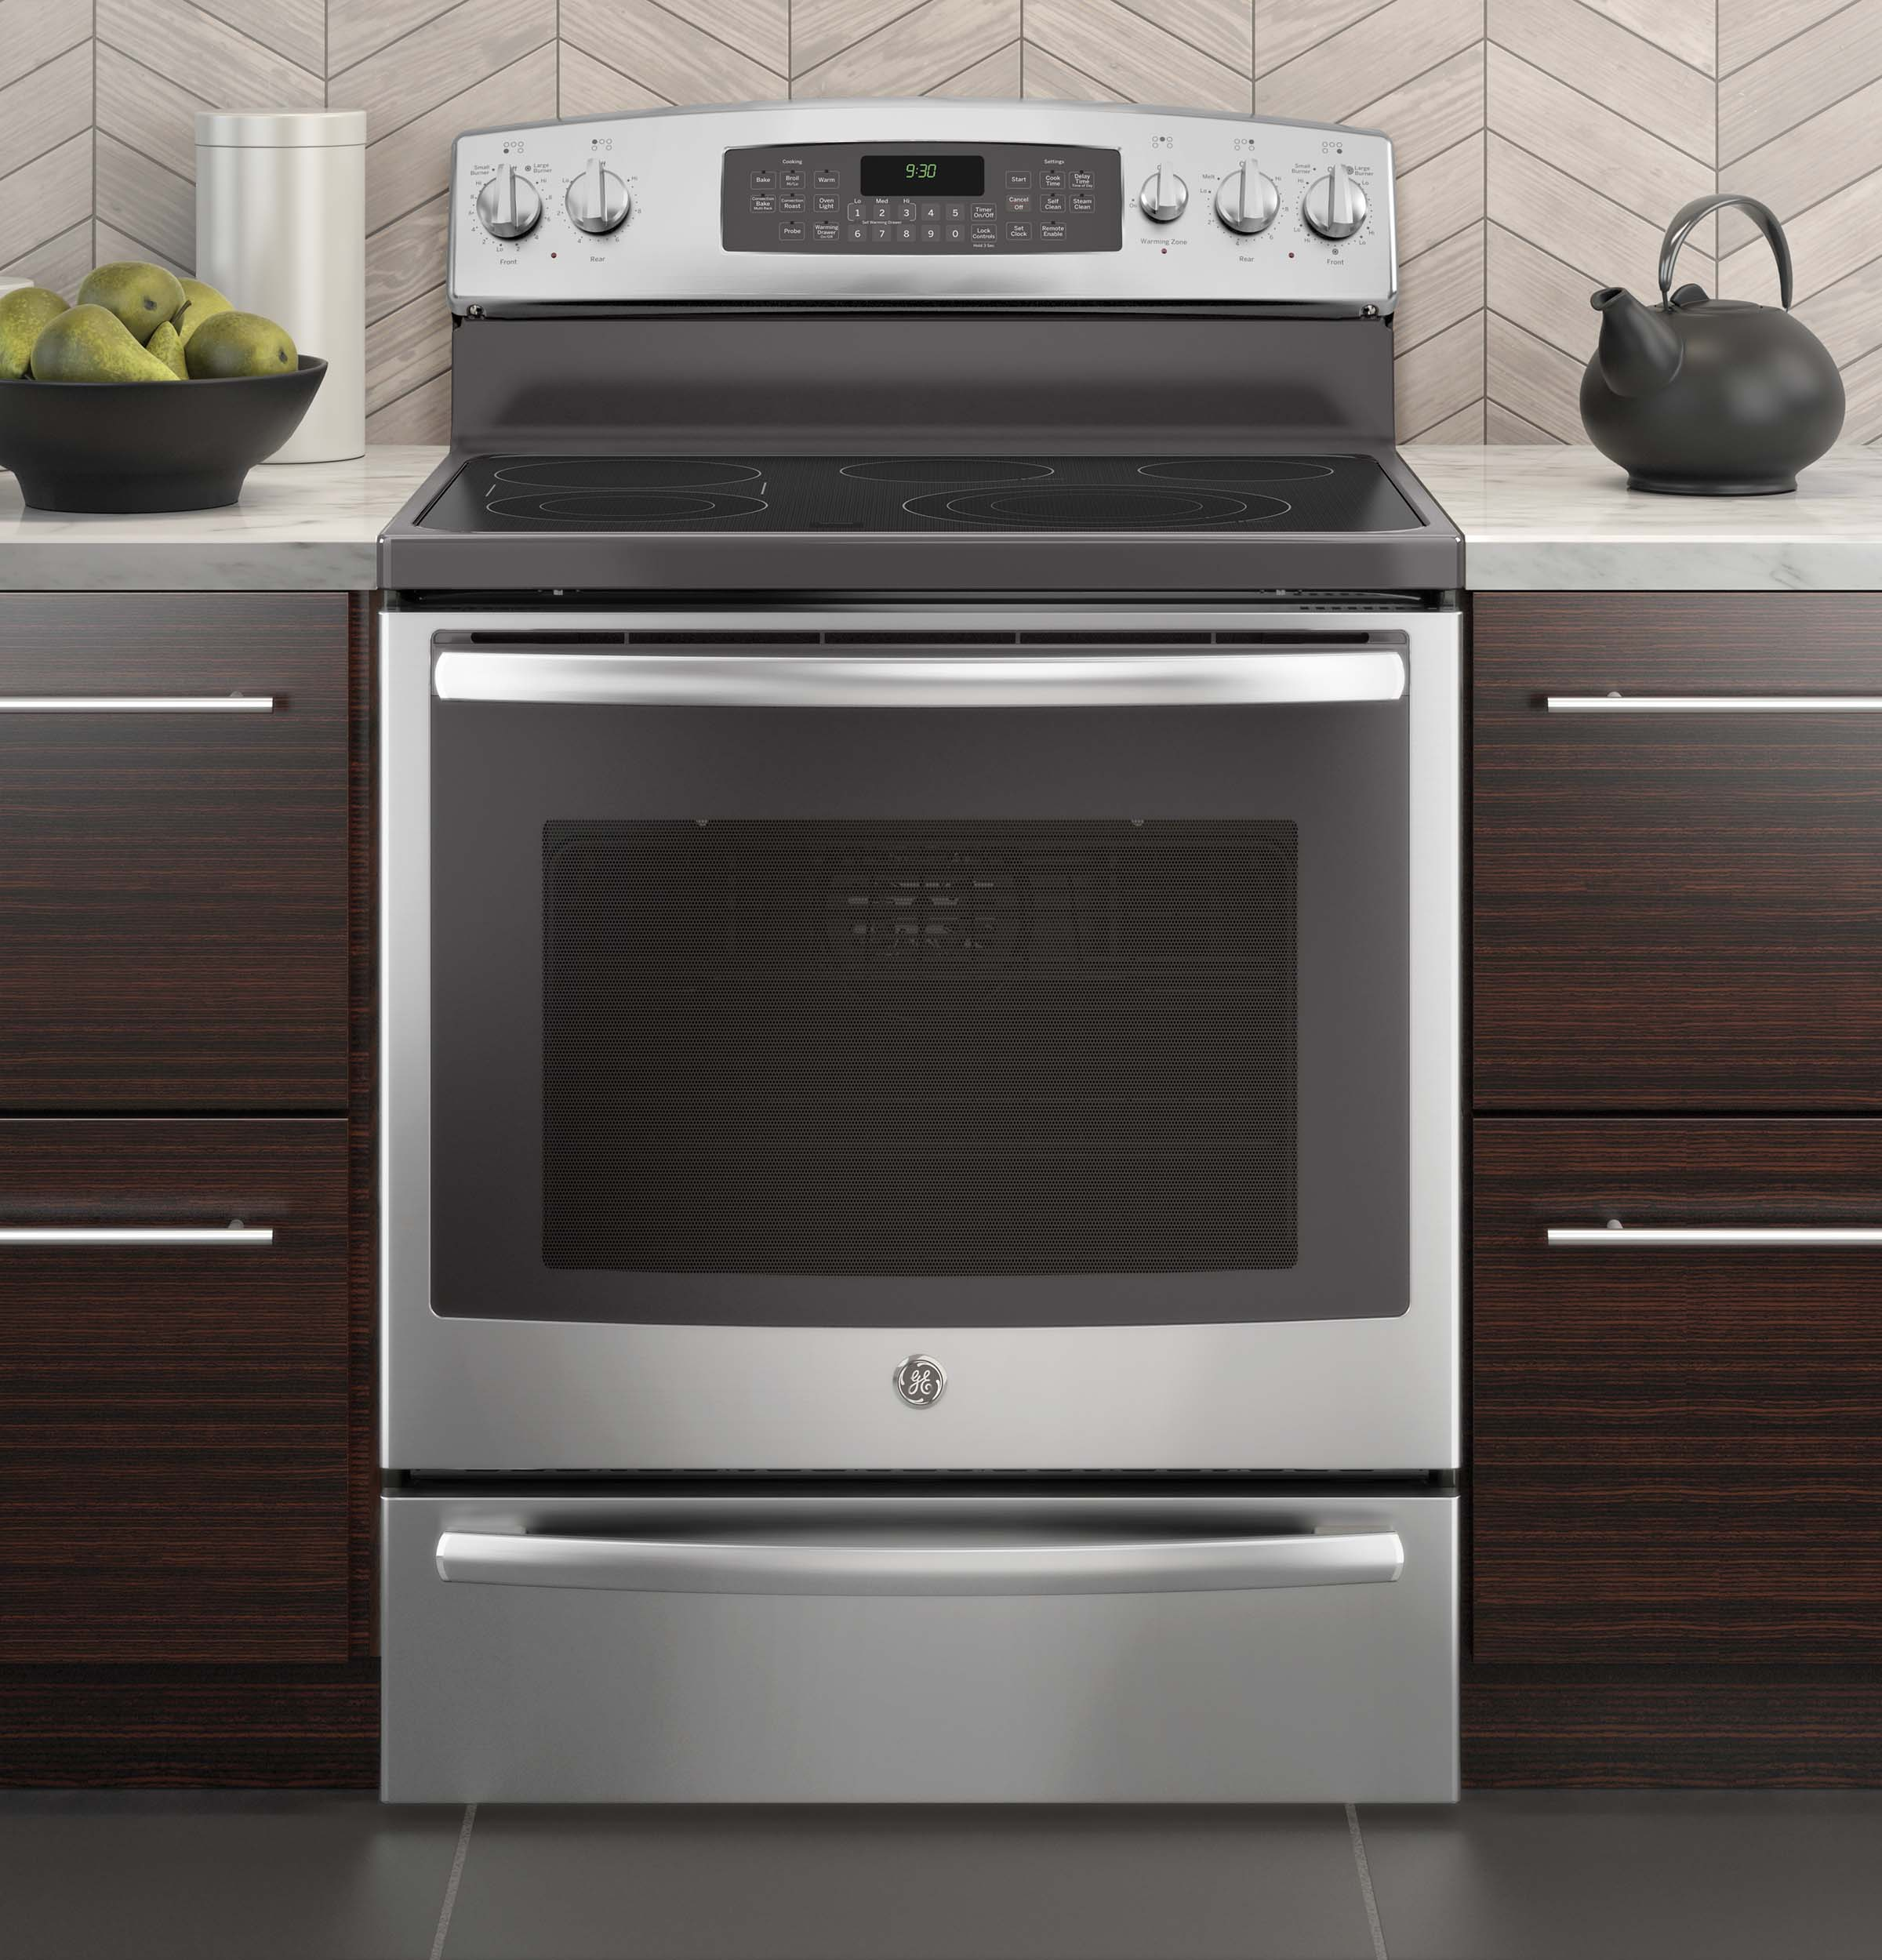 GE Profile 5.3 cu. ft. Free-Standing Electric Convection Range w/ Warming Drawer - Stainless